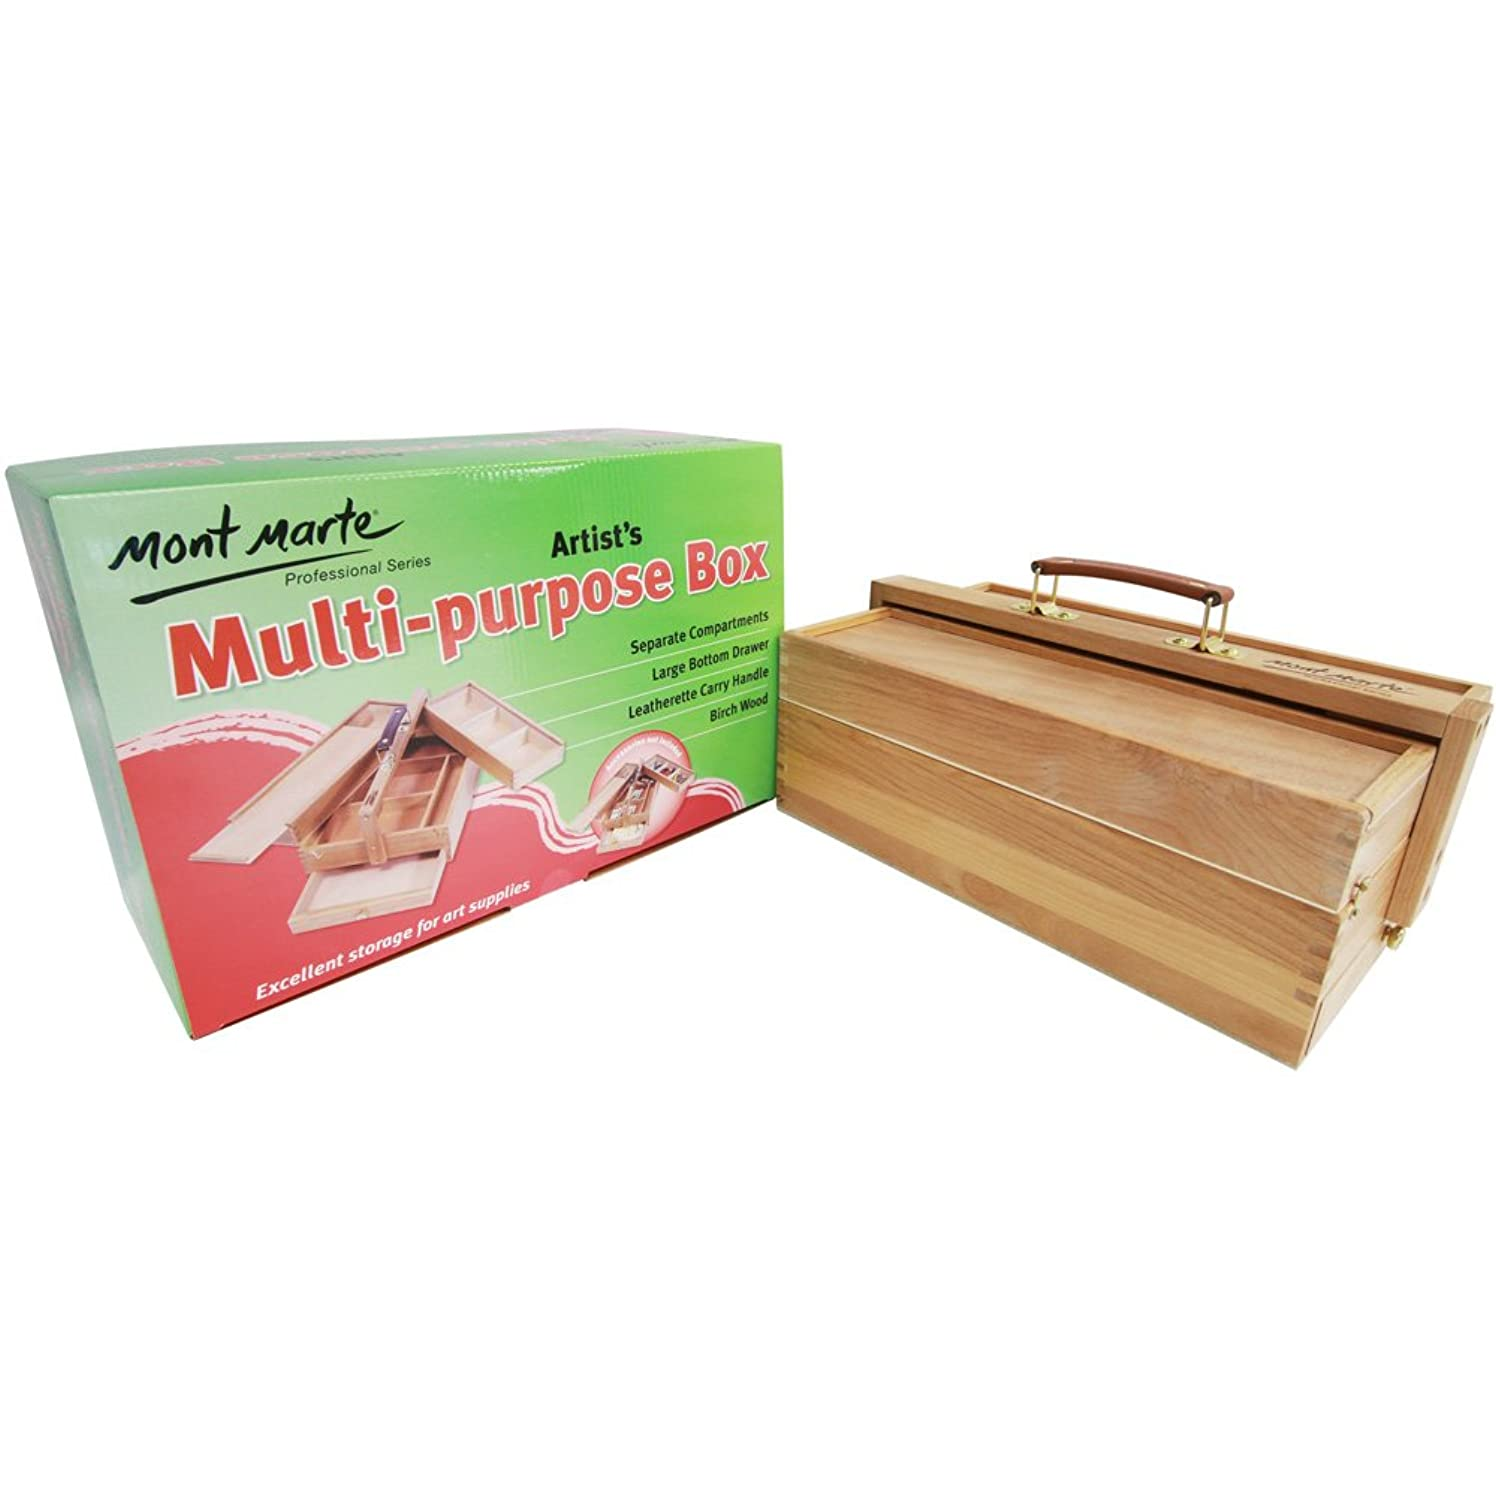 Mont Marte Multi-Purpose Wooden Art Box. 3 Layers of Storage for Organizing Art Supplies. Features a Leather Carry Handle for Easy Transport